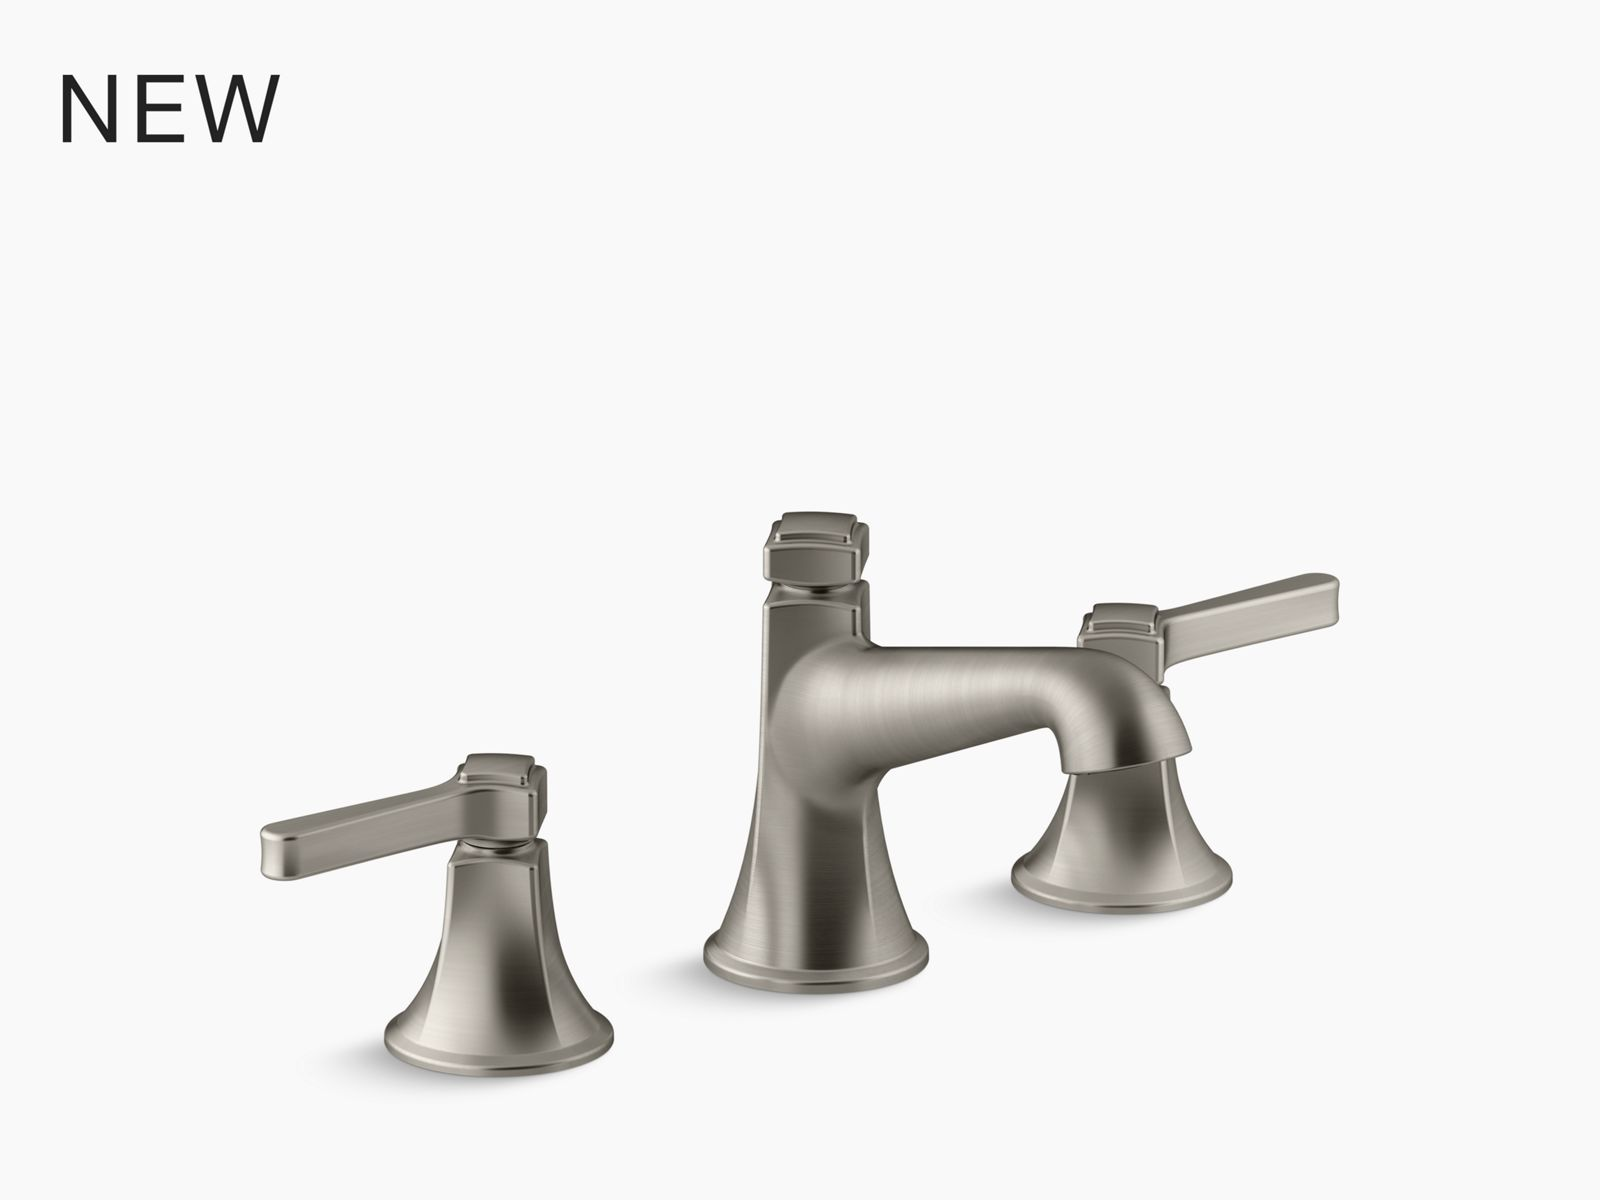 simplice single hole or three hole kitchen sink faucet with 16 5 8 pull down spout docknetik magnetic docking system and a 3 function sprayhead